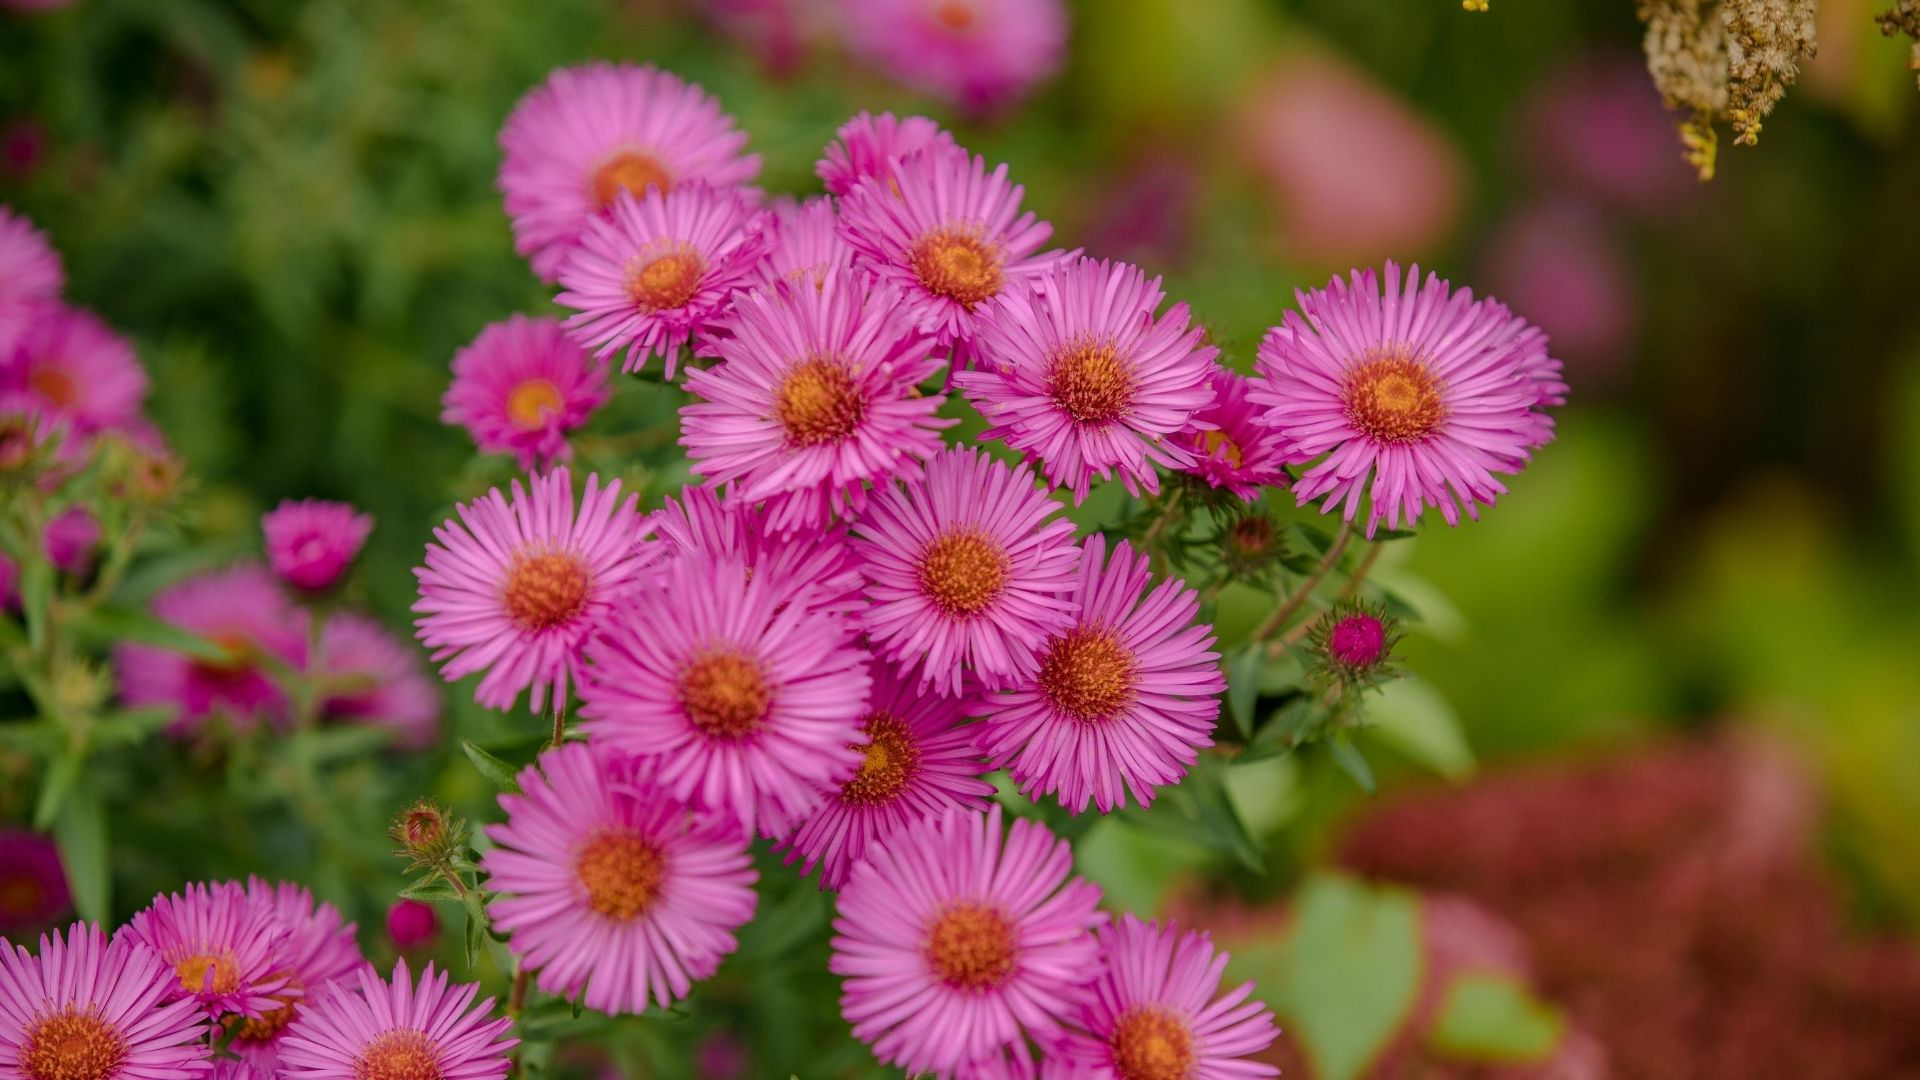 A bunch of Aster novae-angliae - Harrington's Pink Aster flowers in full bloom.